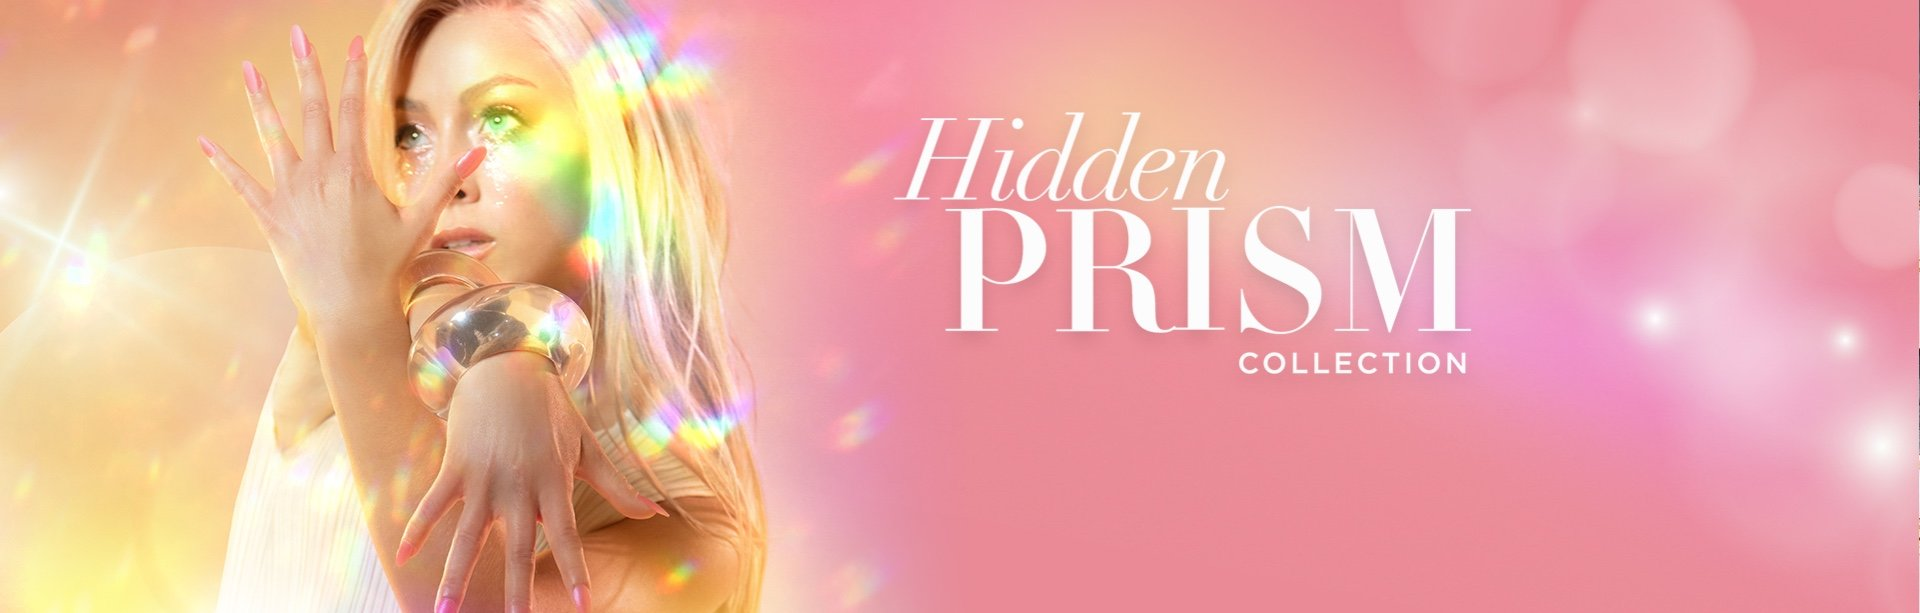 Shop the OPI Hidden Prism Collection